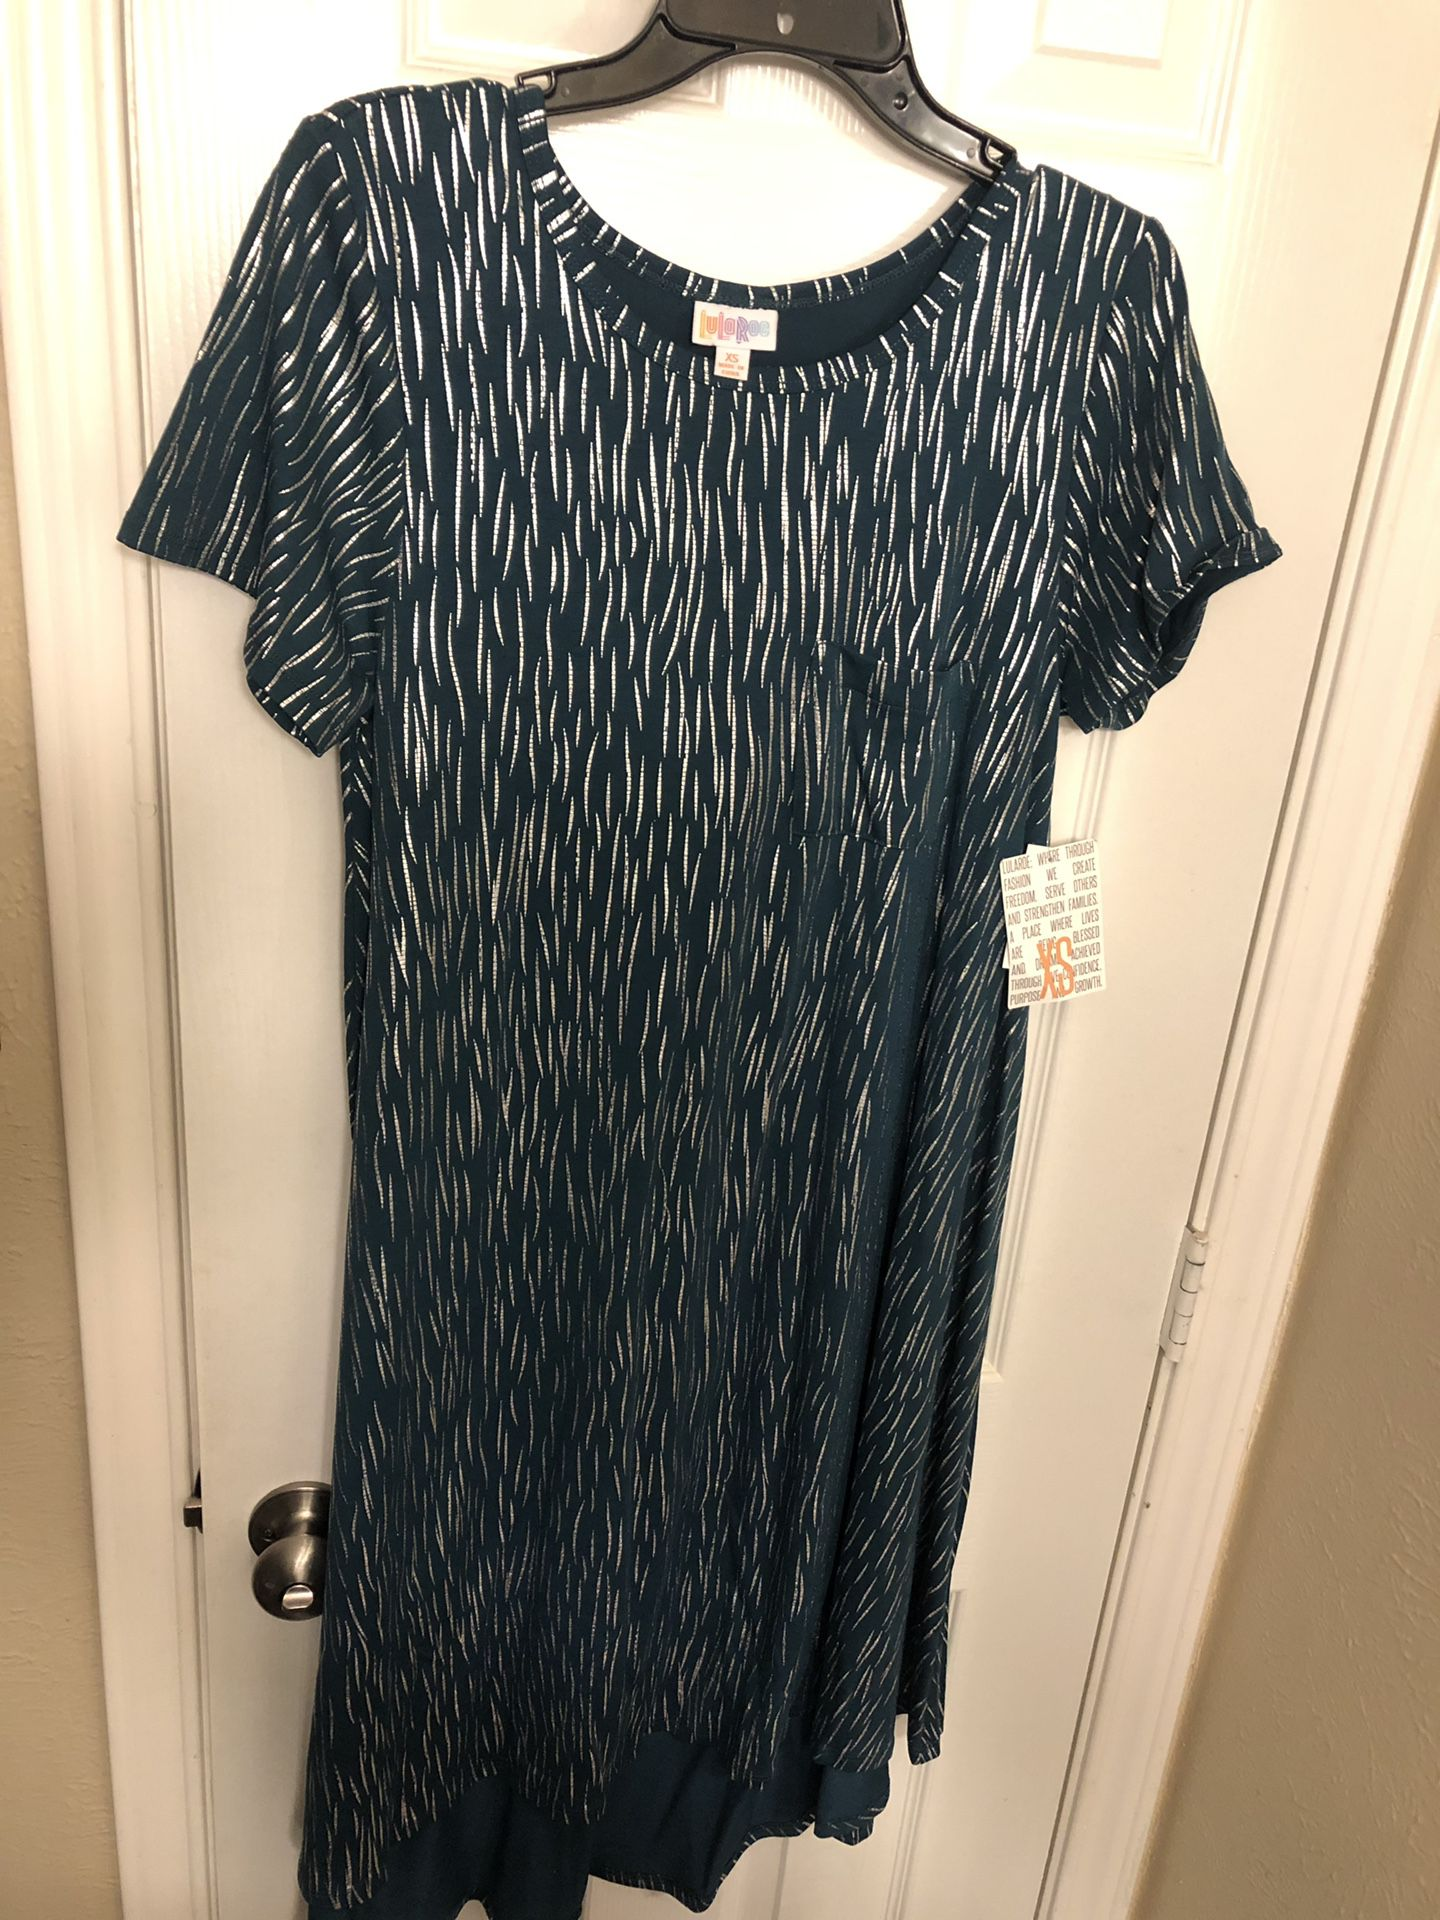 Lularoe extra small Carly (elegant collection, silver shimmer and dark green/teal-like background)